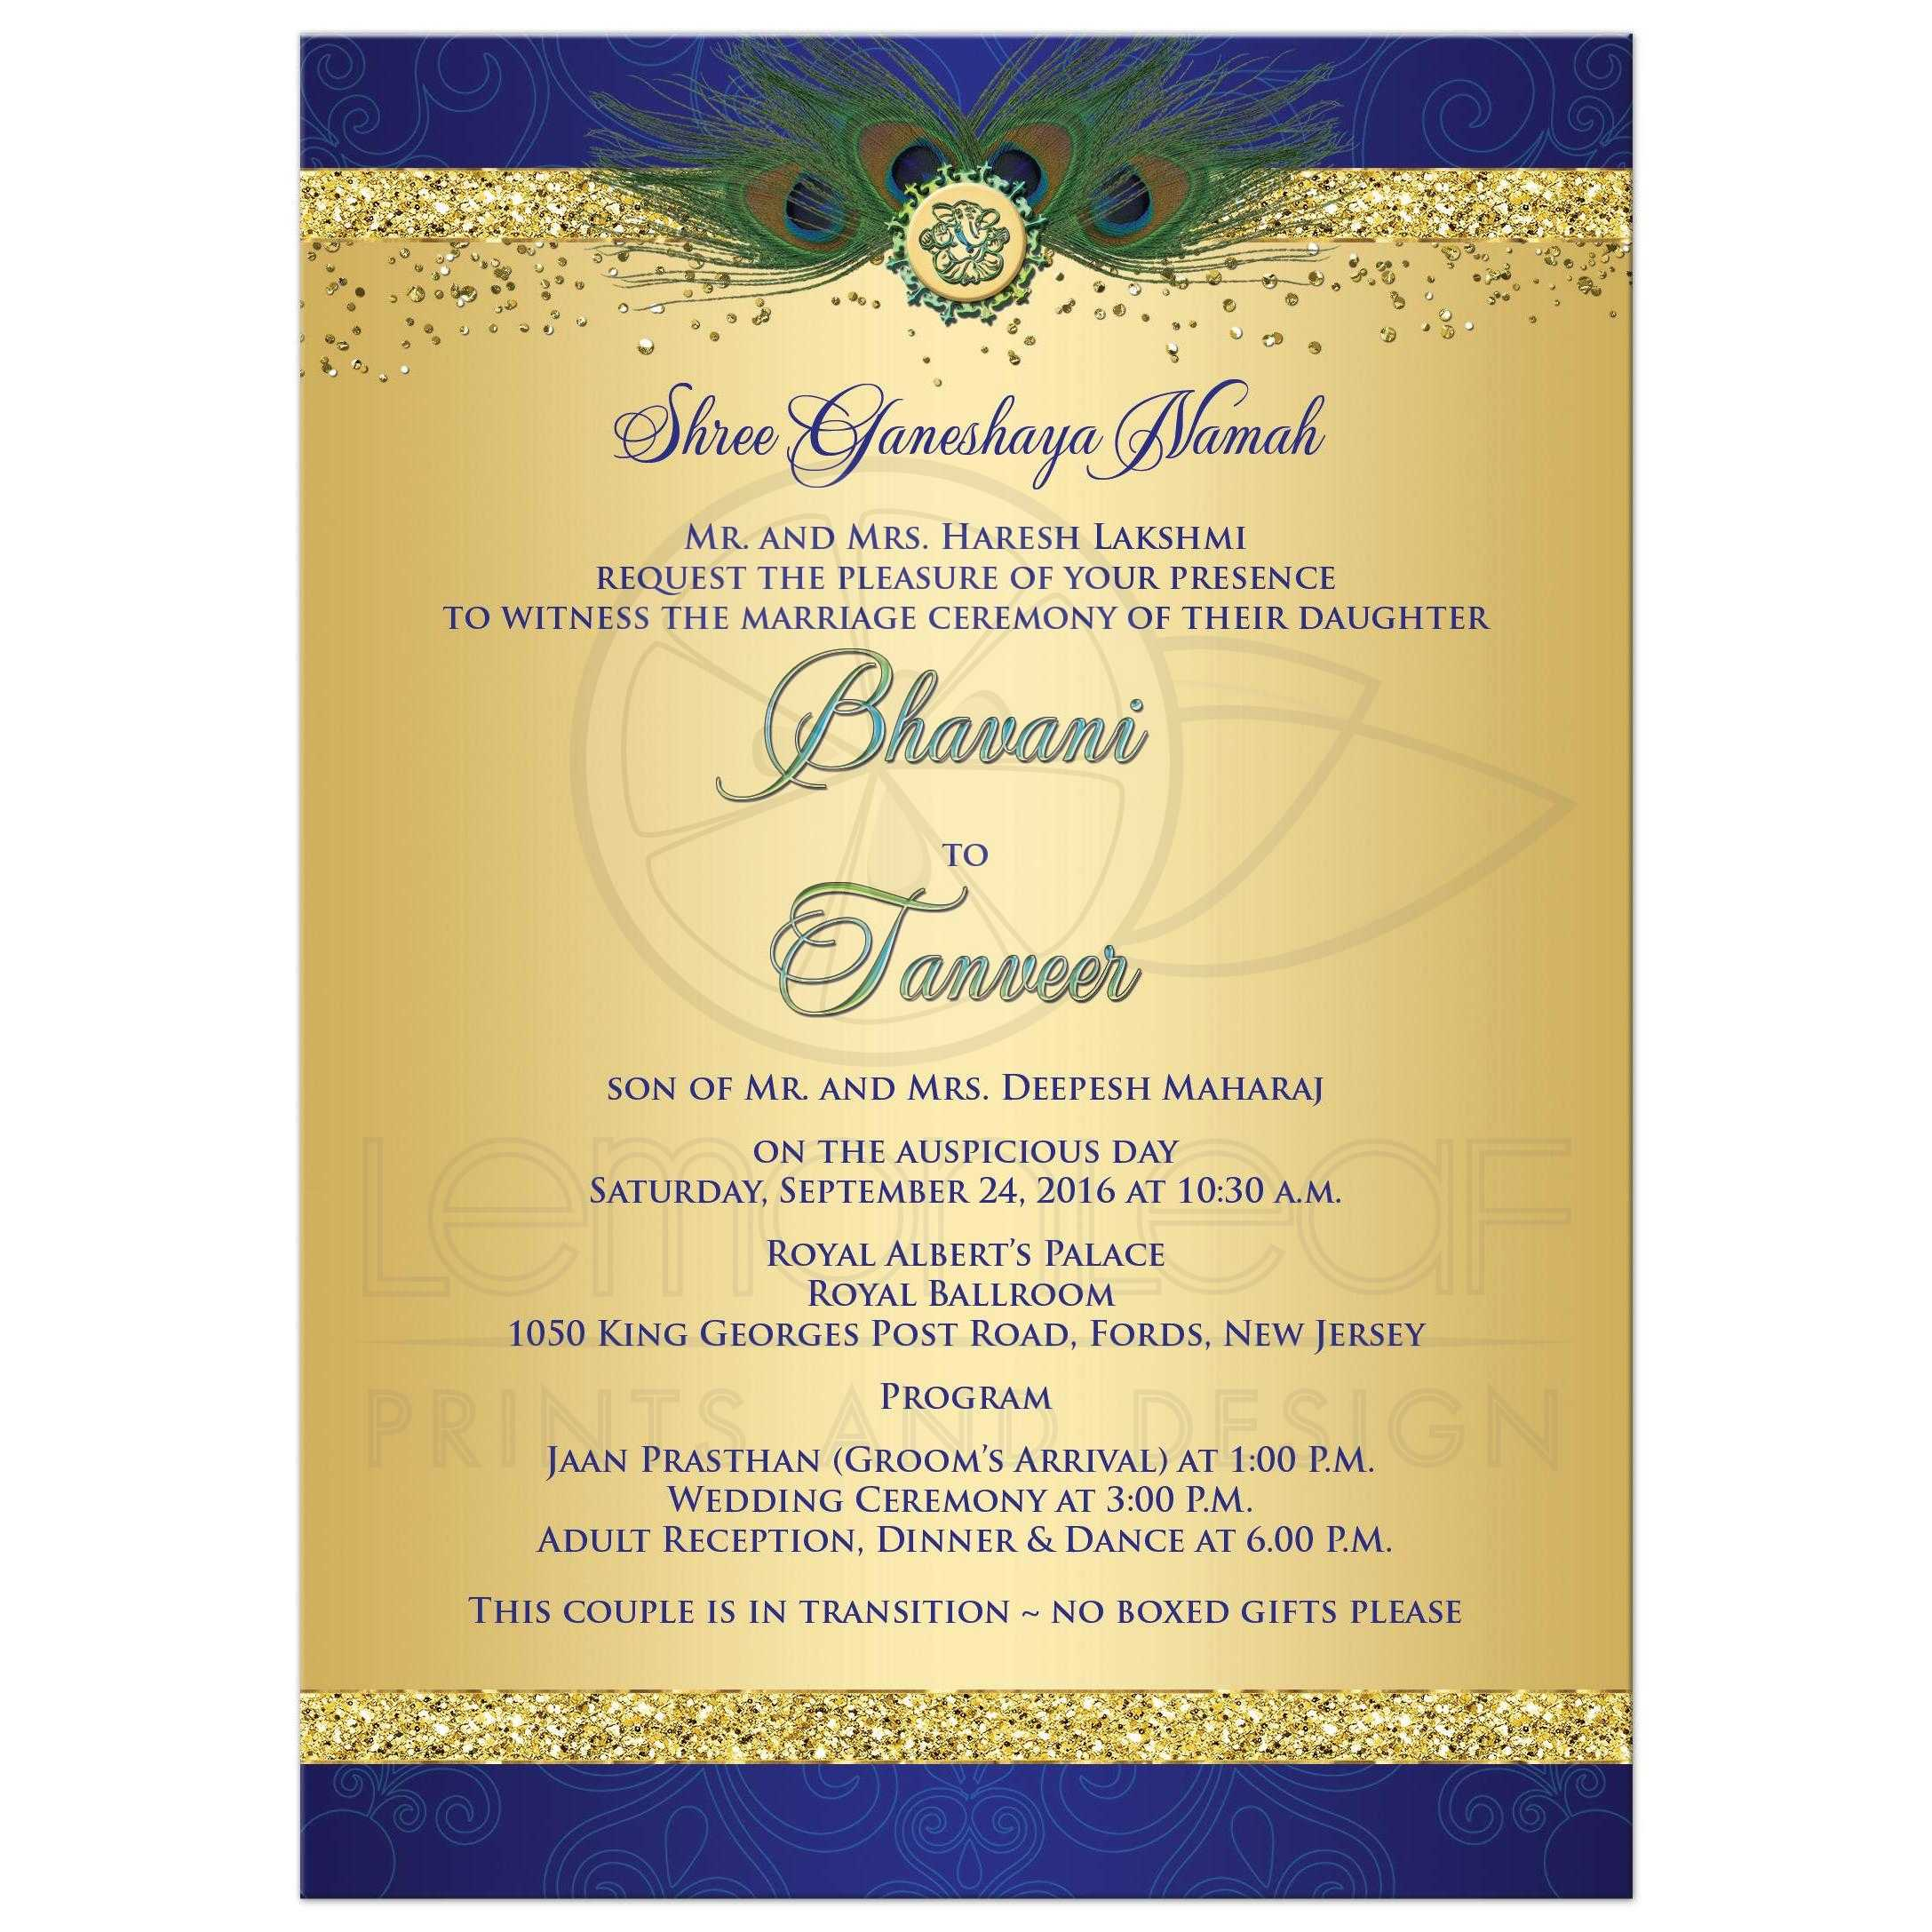 Wedding Invitation Peacock Feathers Cascade Faux Gold